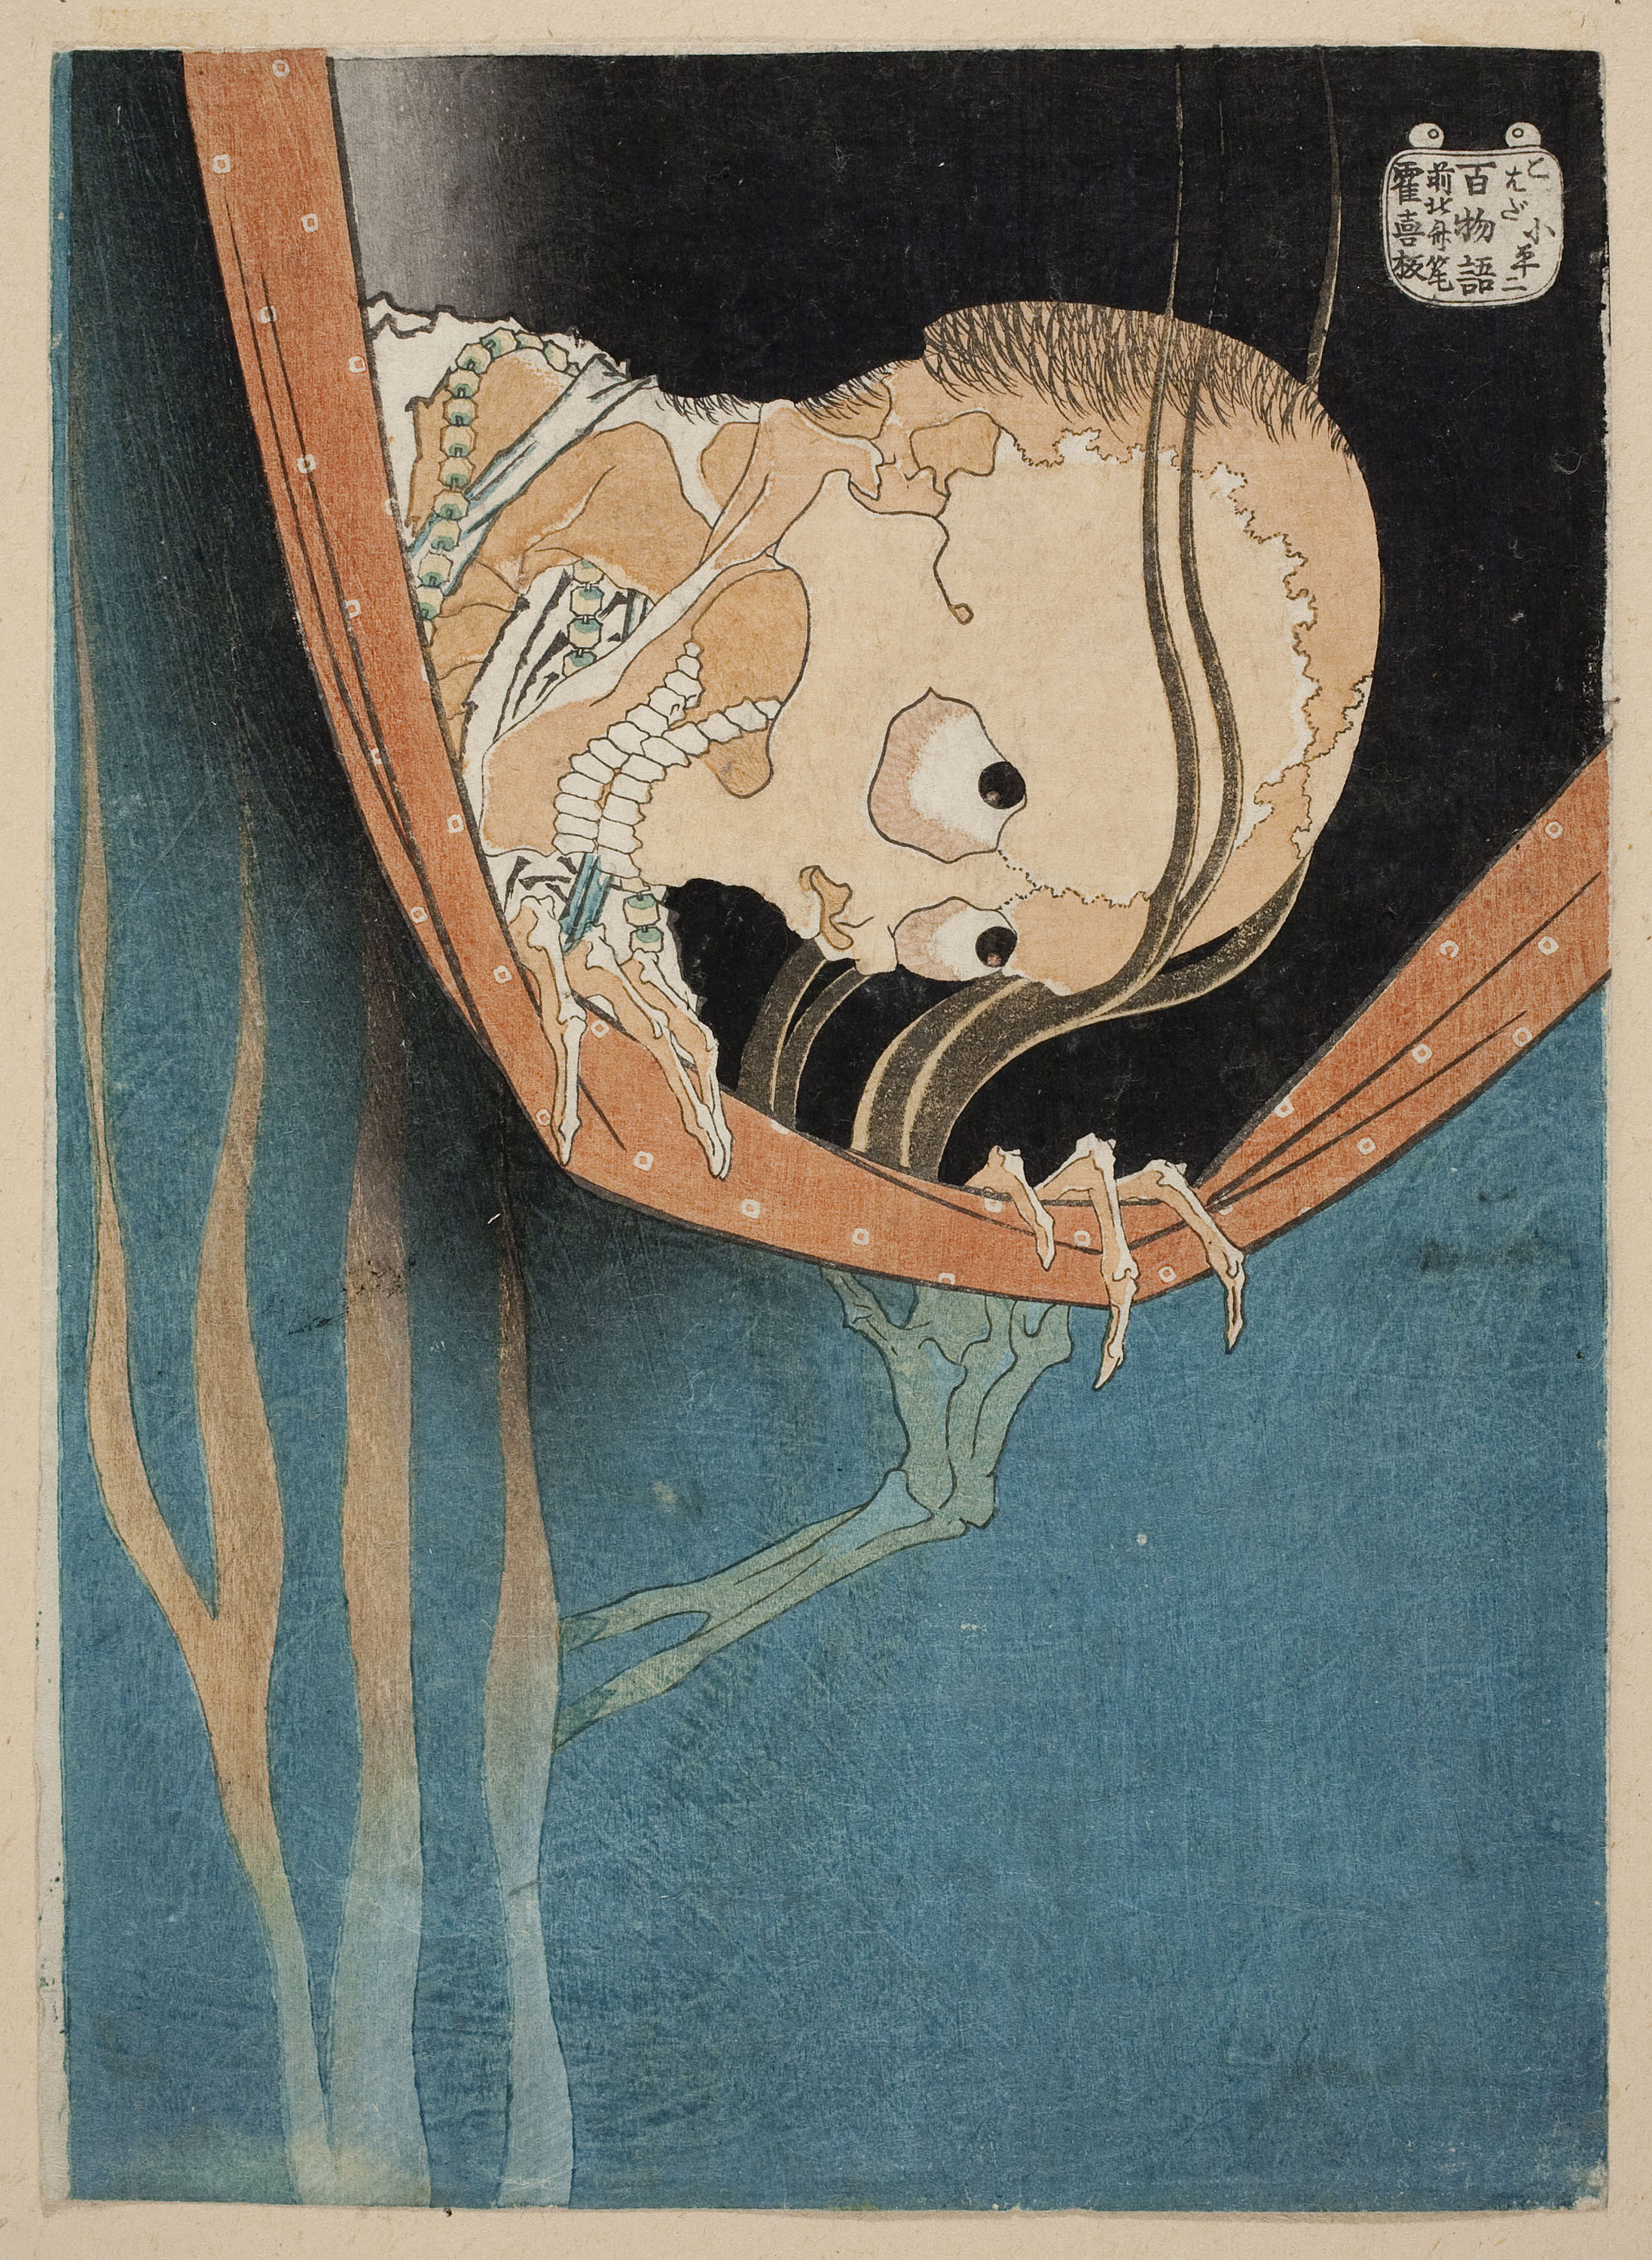 Katsushika Hokusai - The Ghost of Kohada Koheiji (One Hundred Ghost Stories) - 1831